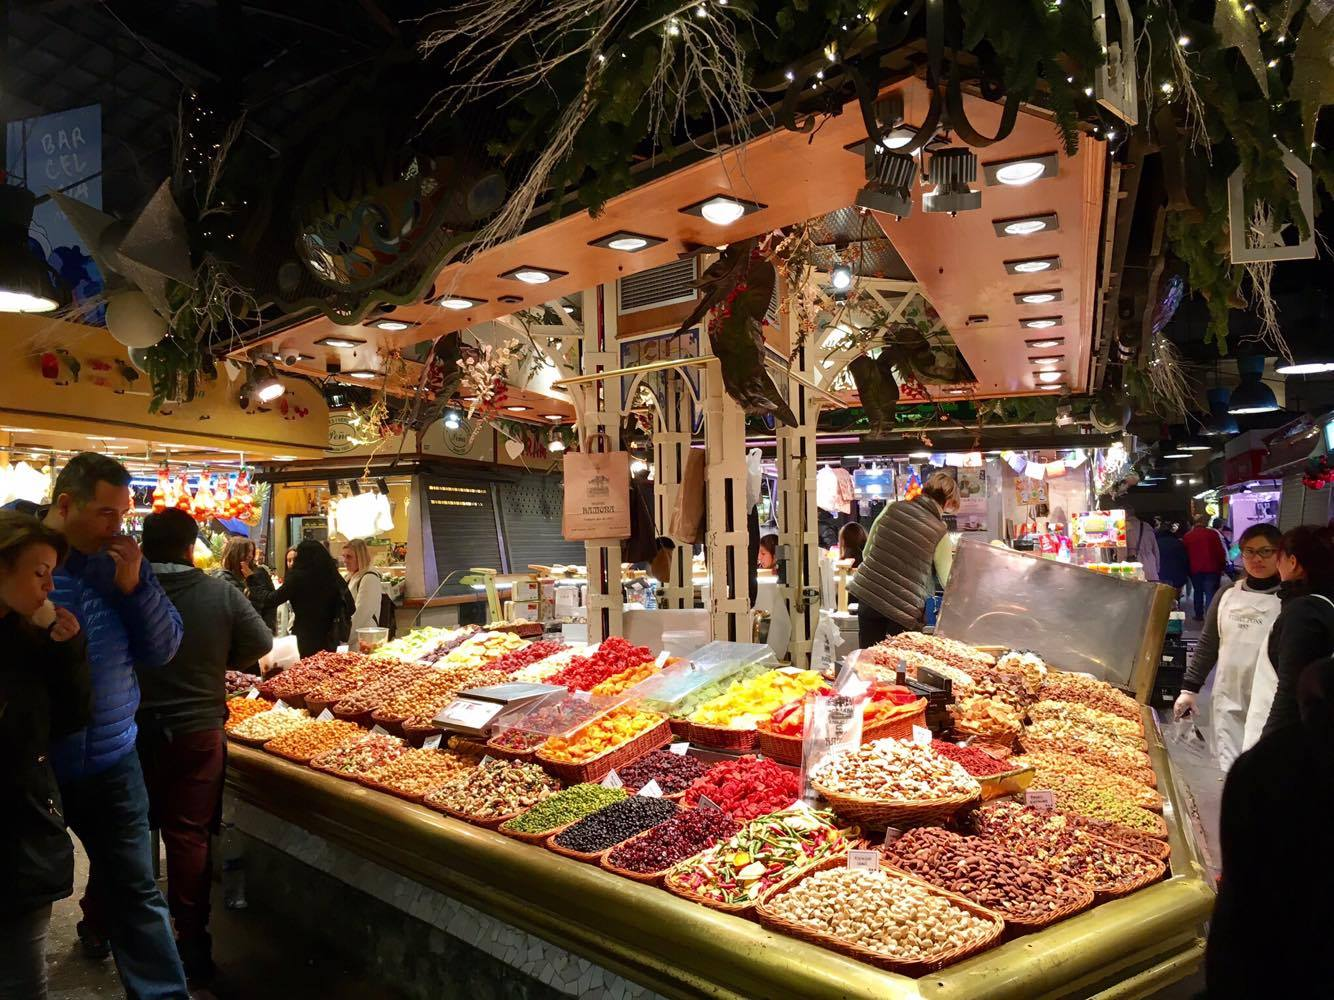 Stall selling local Catalan spices